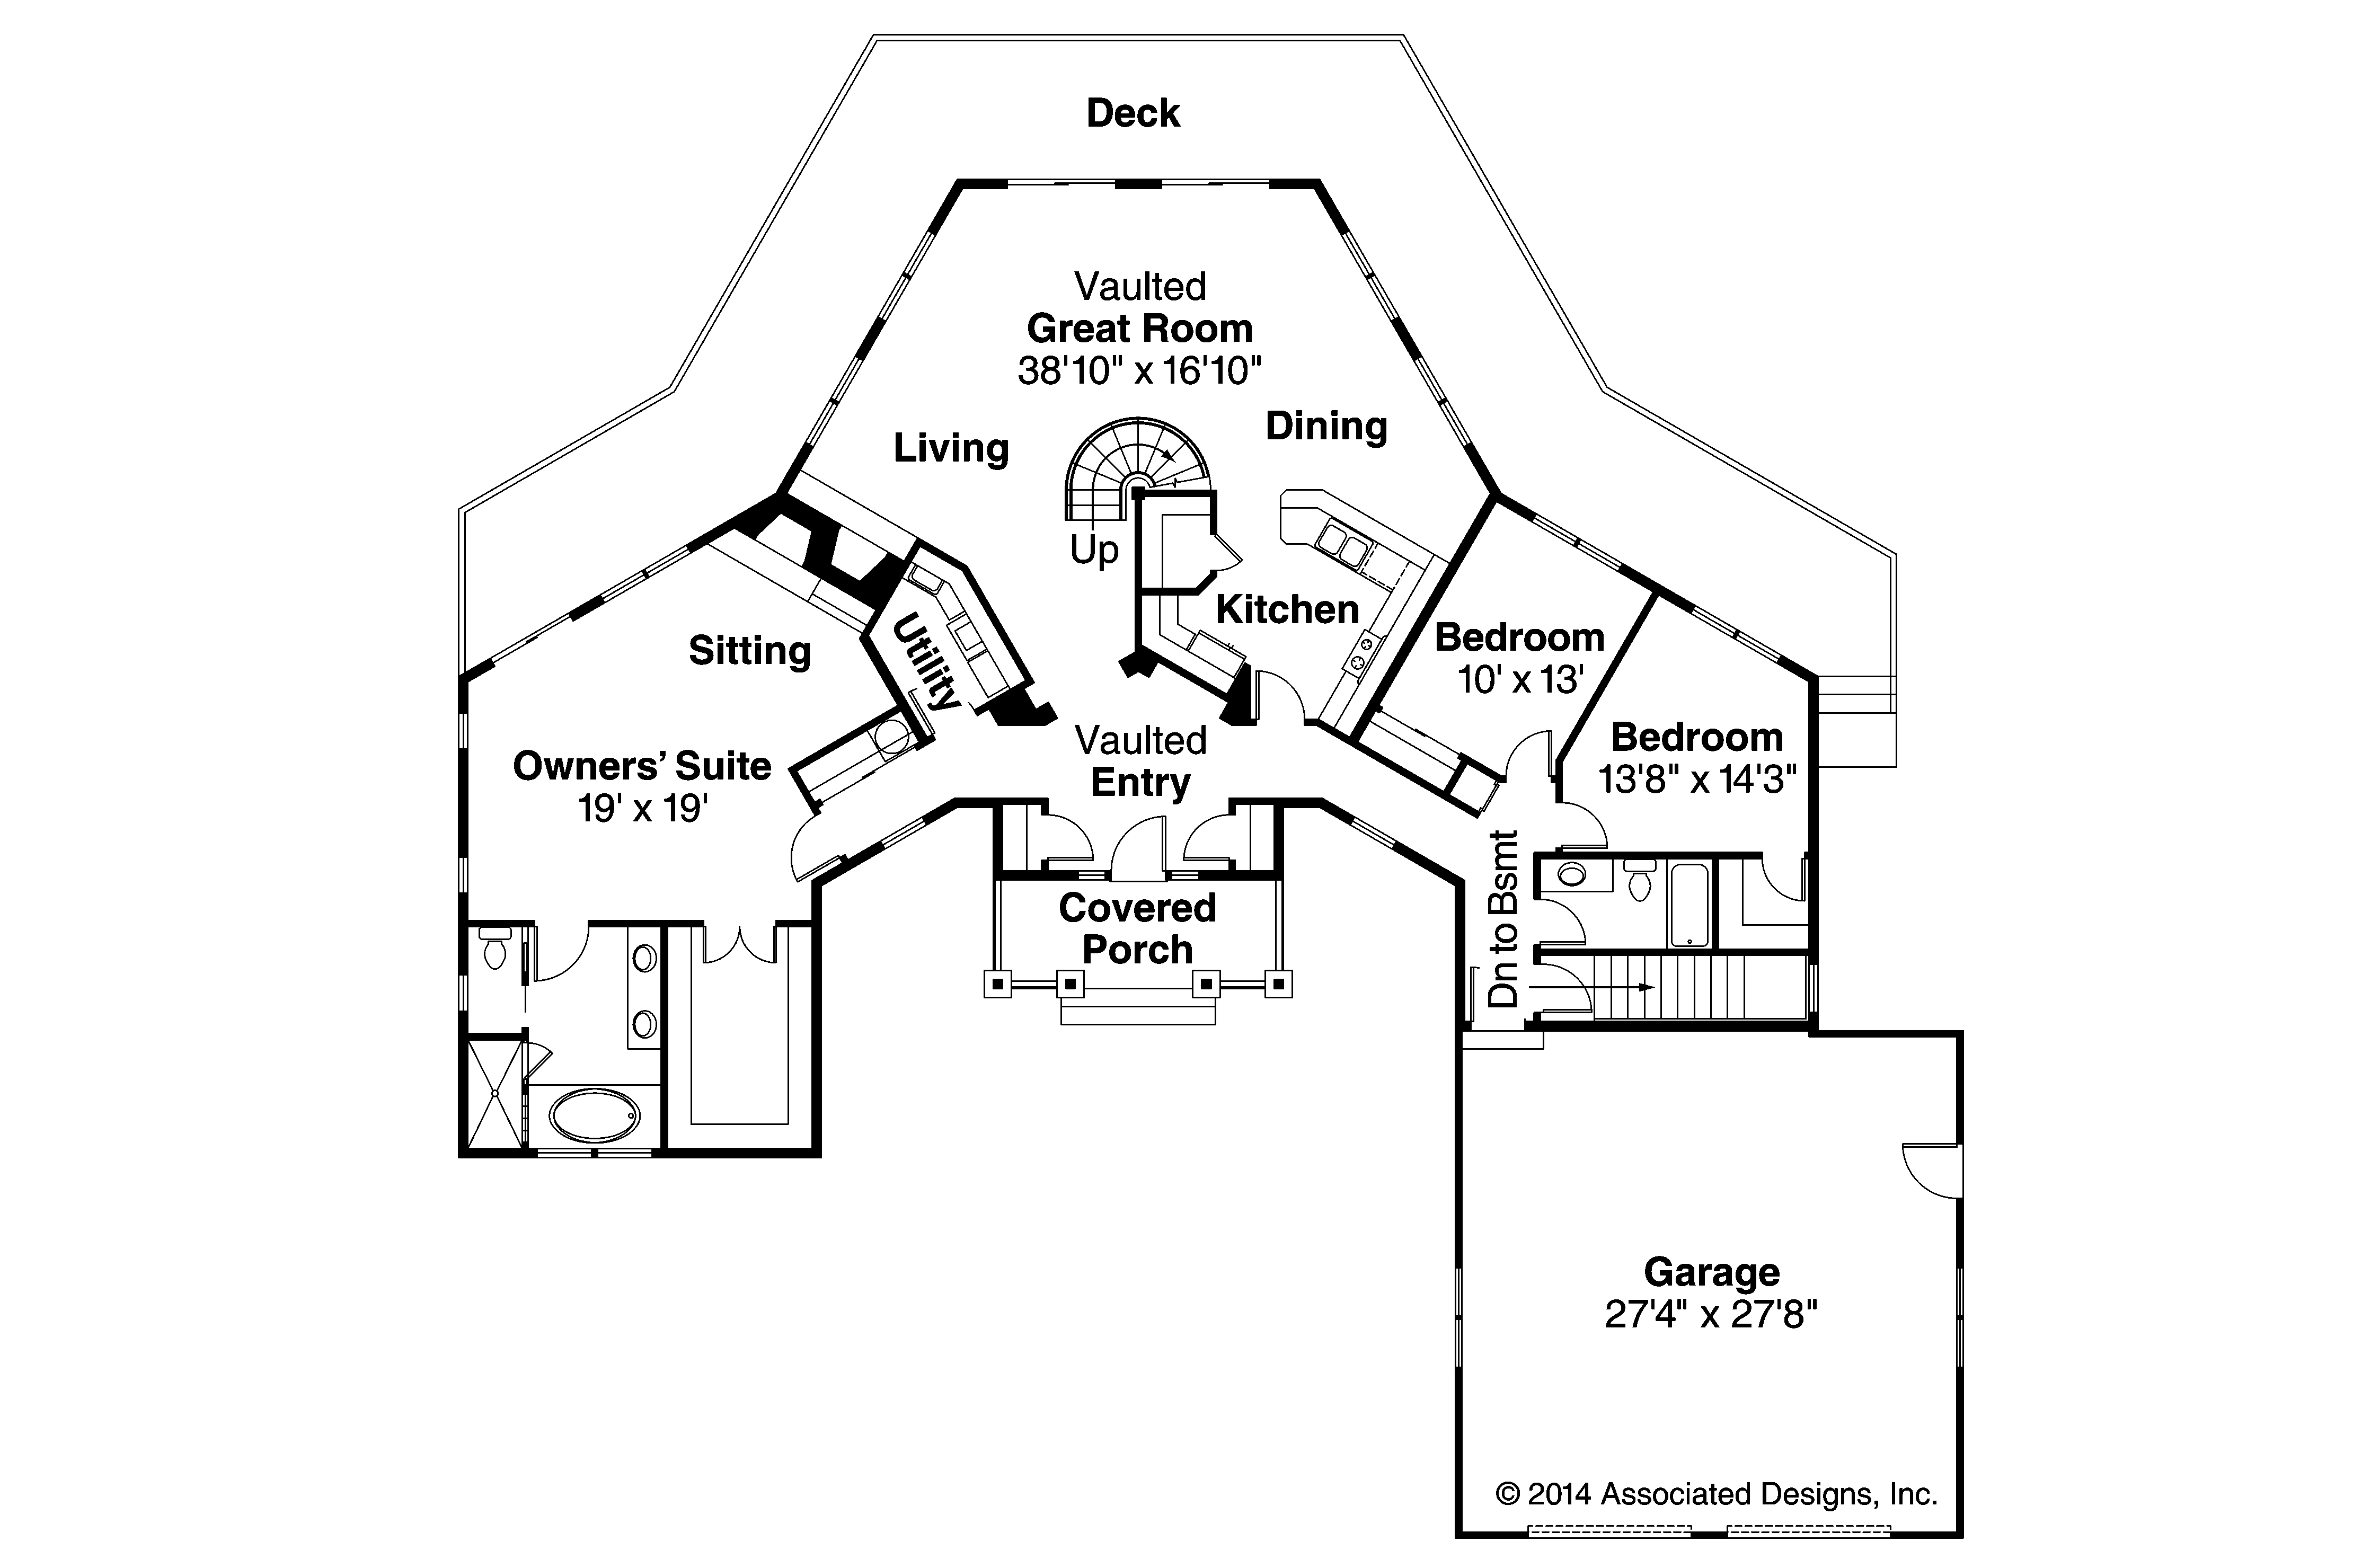 Craftsman House Plans McCarren 10 509 Associated Designs #2: craftsman house plan mccarren 10 509 flr1